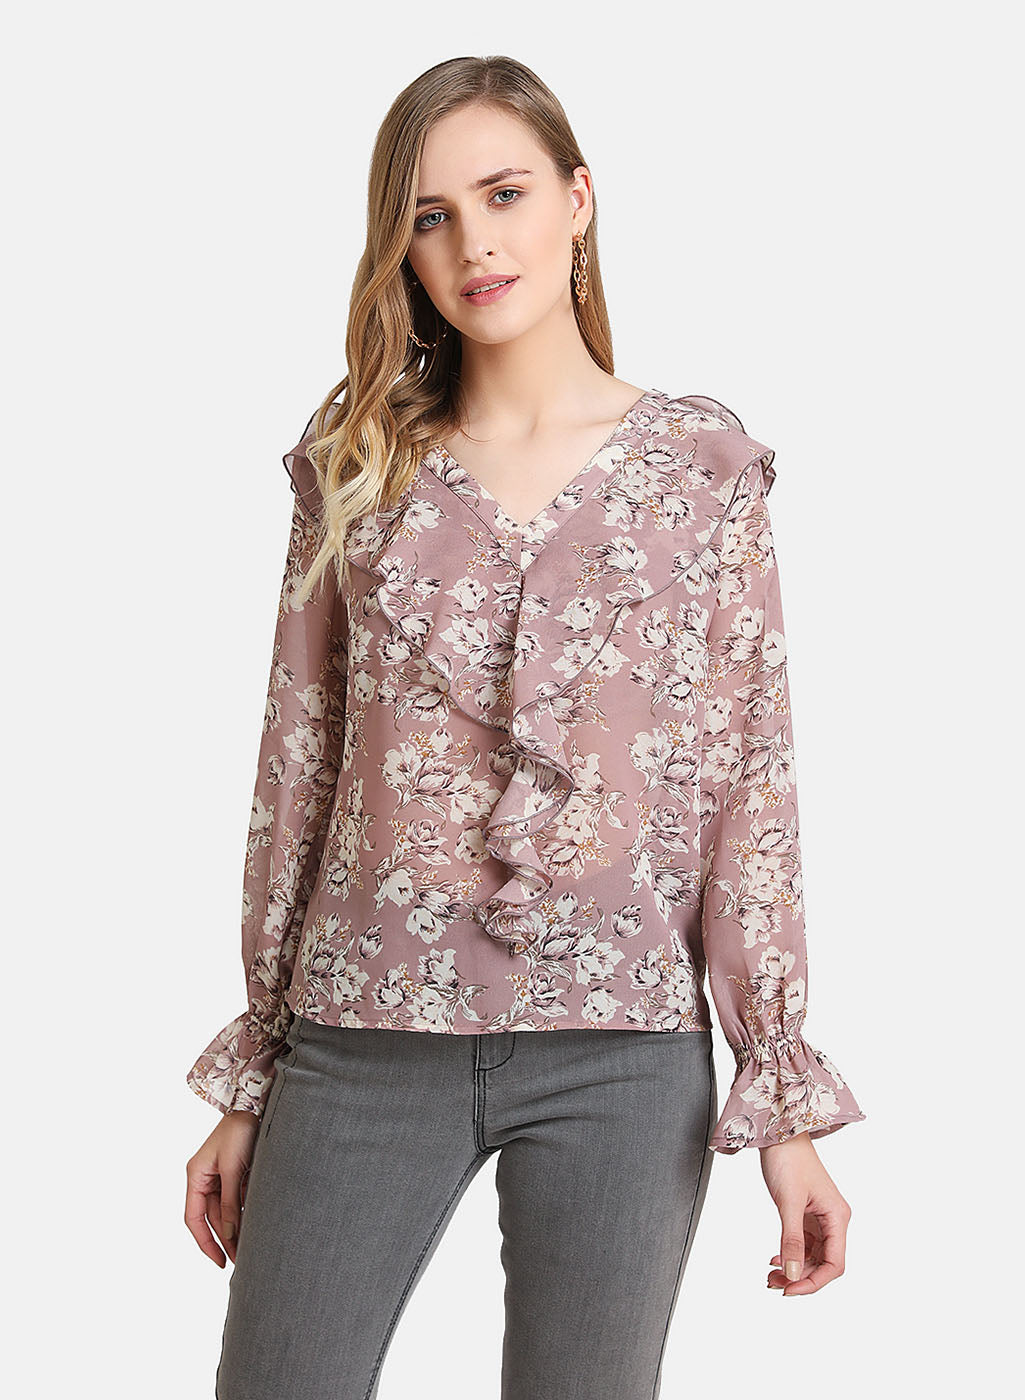 Ruffle Overlay Floral Printed Top (Additional 23% OFF)